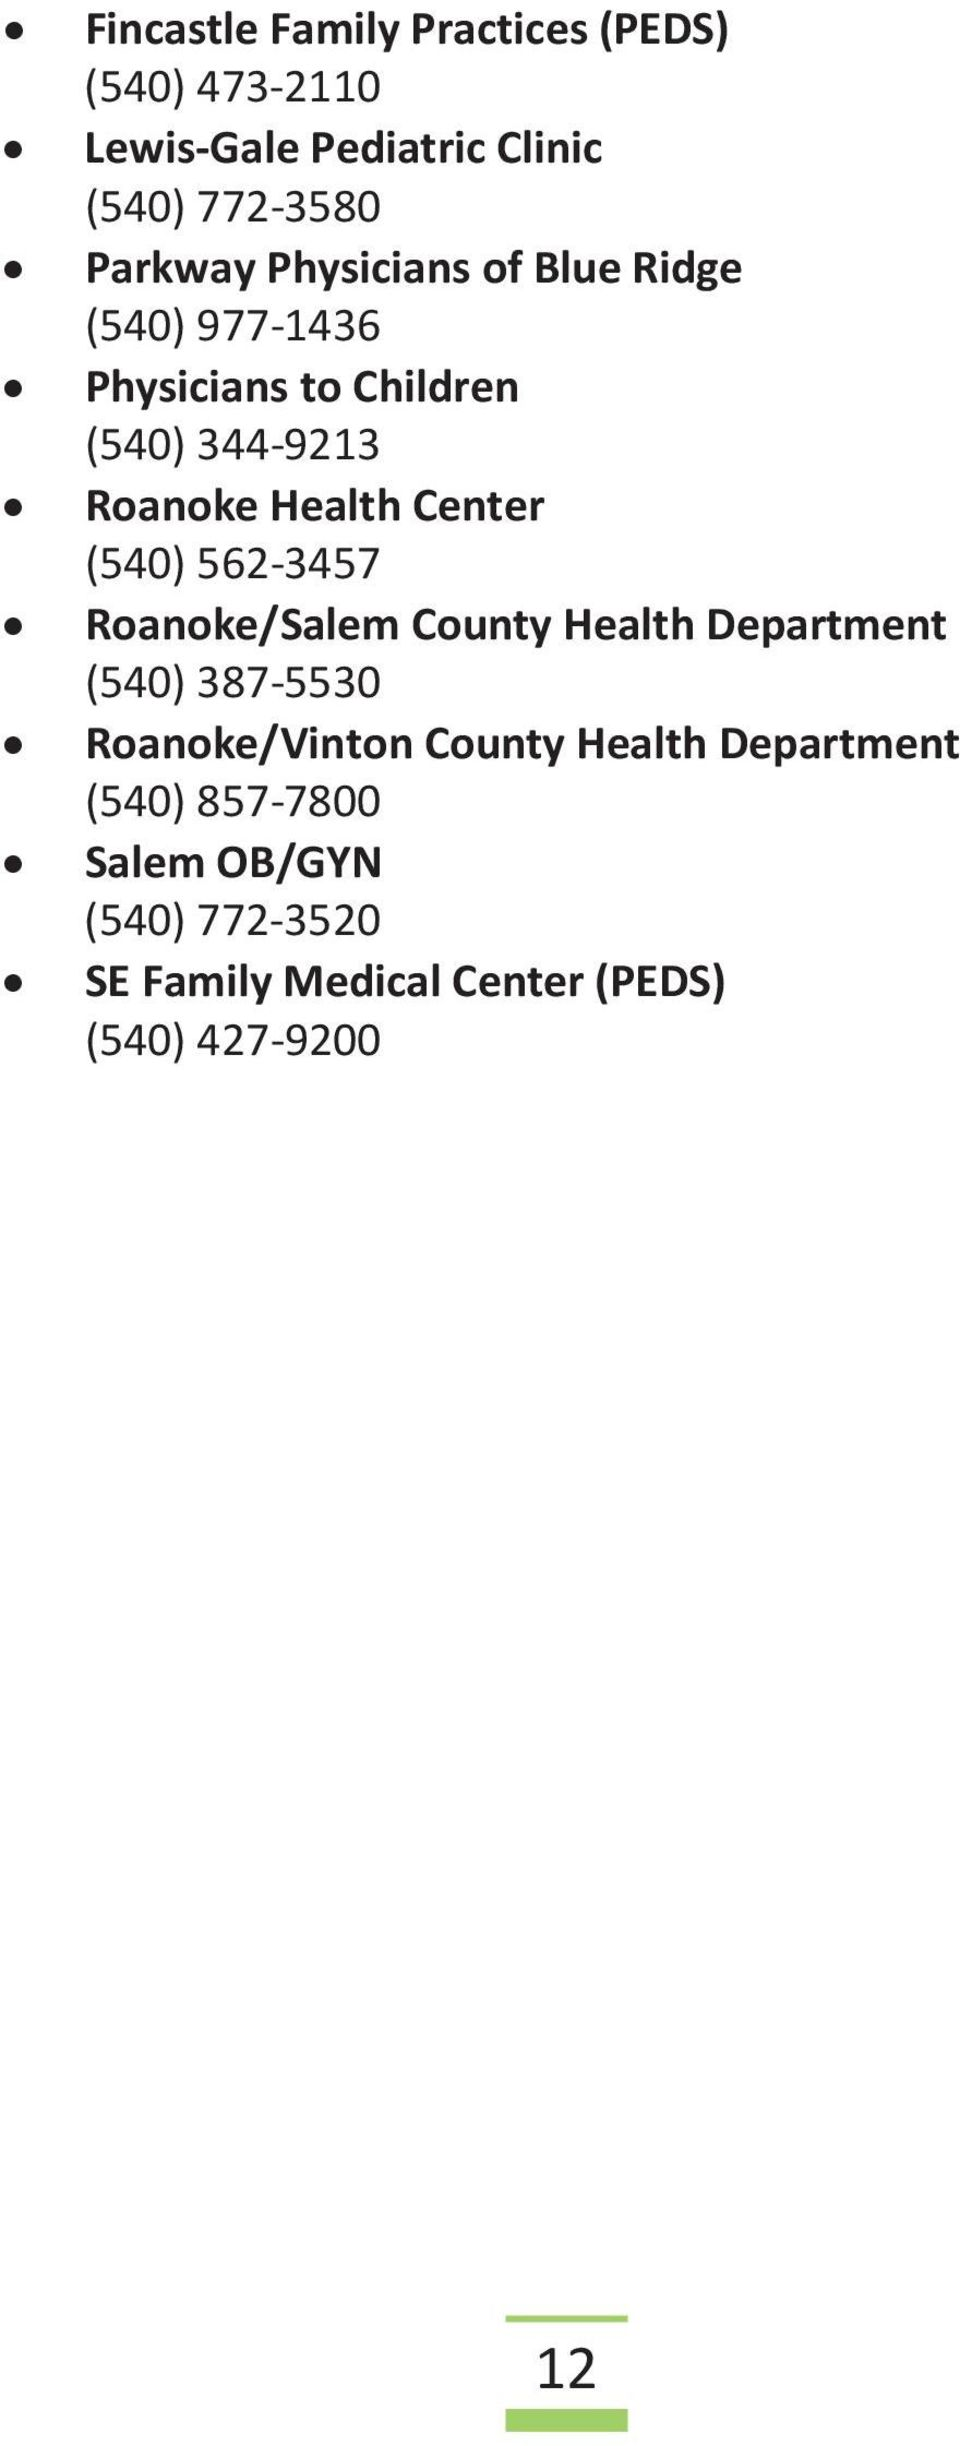 (540) 562-3457 Roanoke/Salem County Health Department (540) 387-5530 Roanoke/Vinton County Health